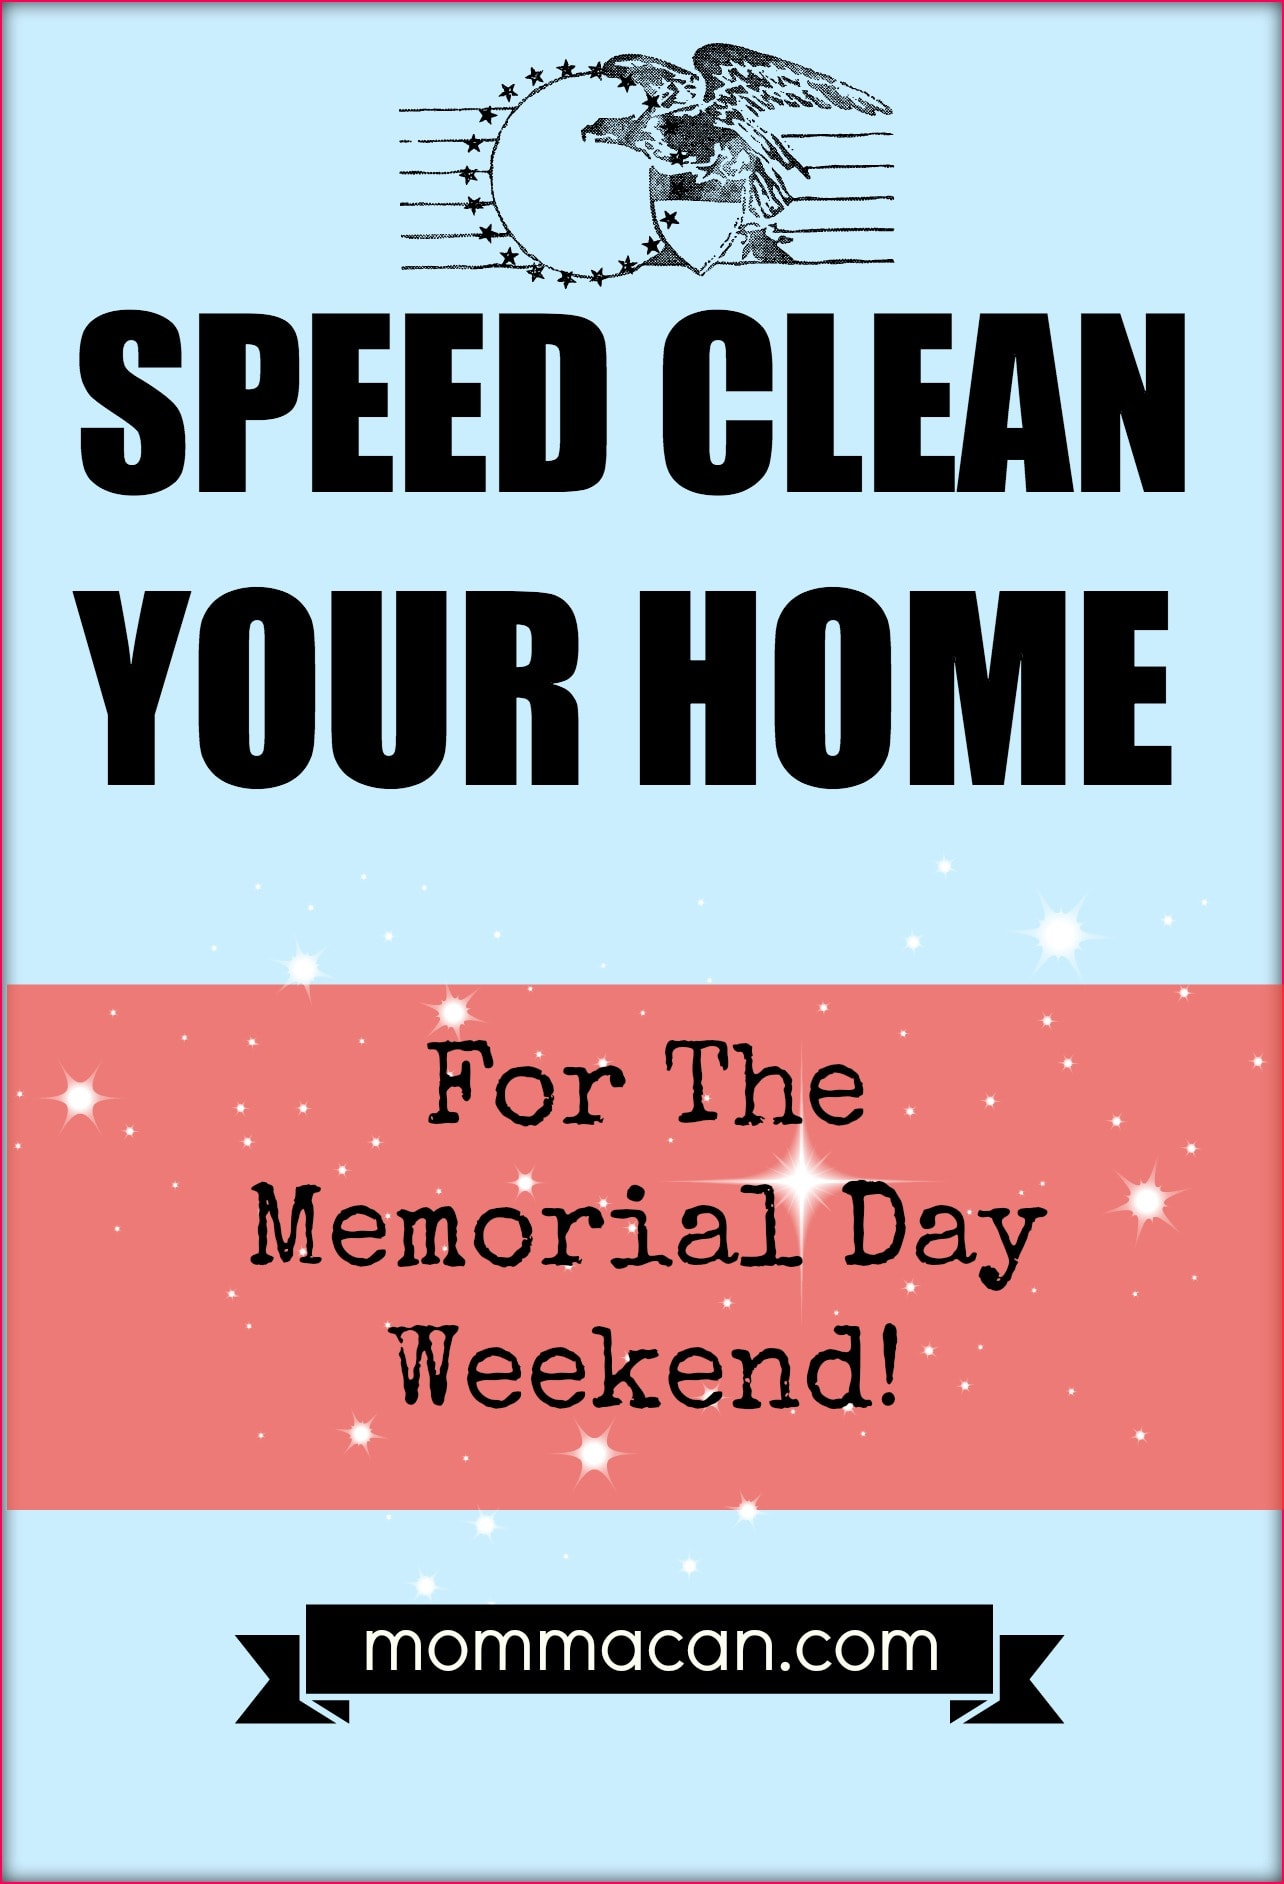 Speed Clean Your Home for Memorial Day Weekend!